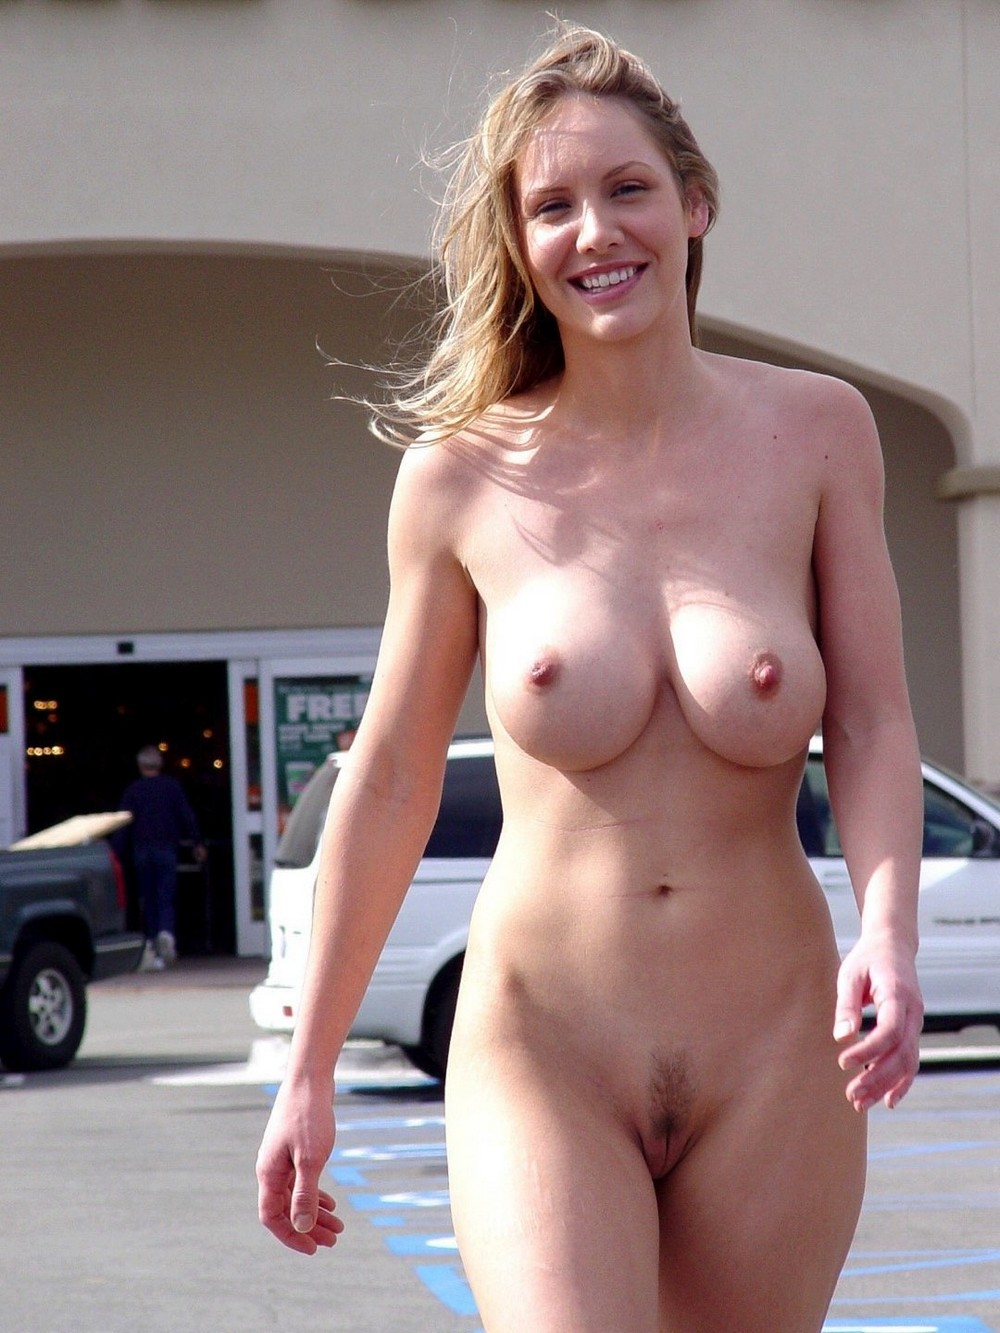 Mature Amateur Wife Frontal Nude